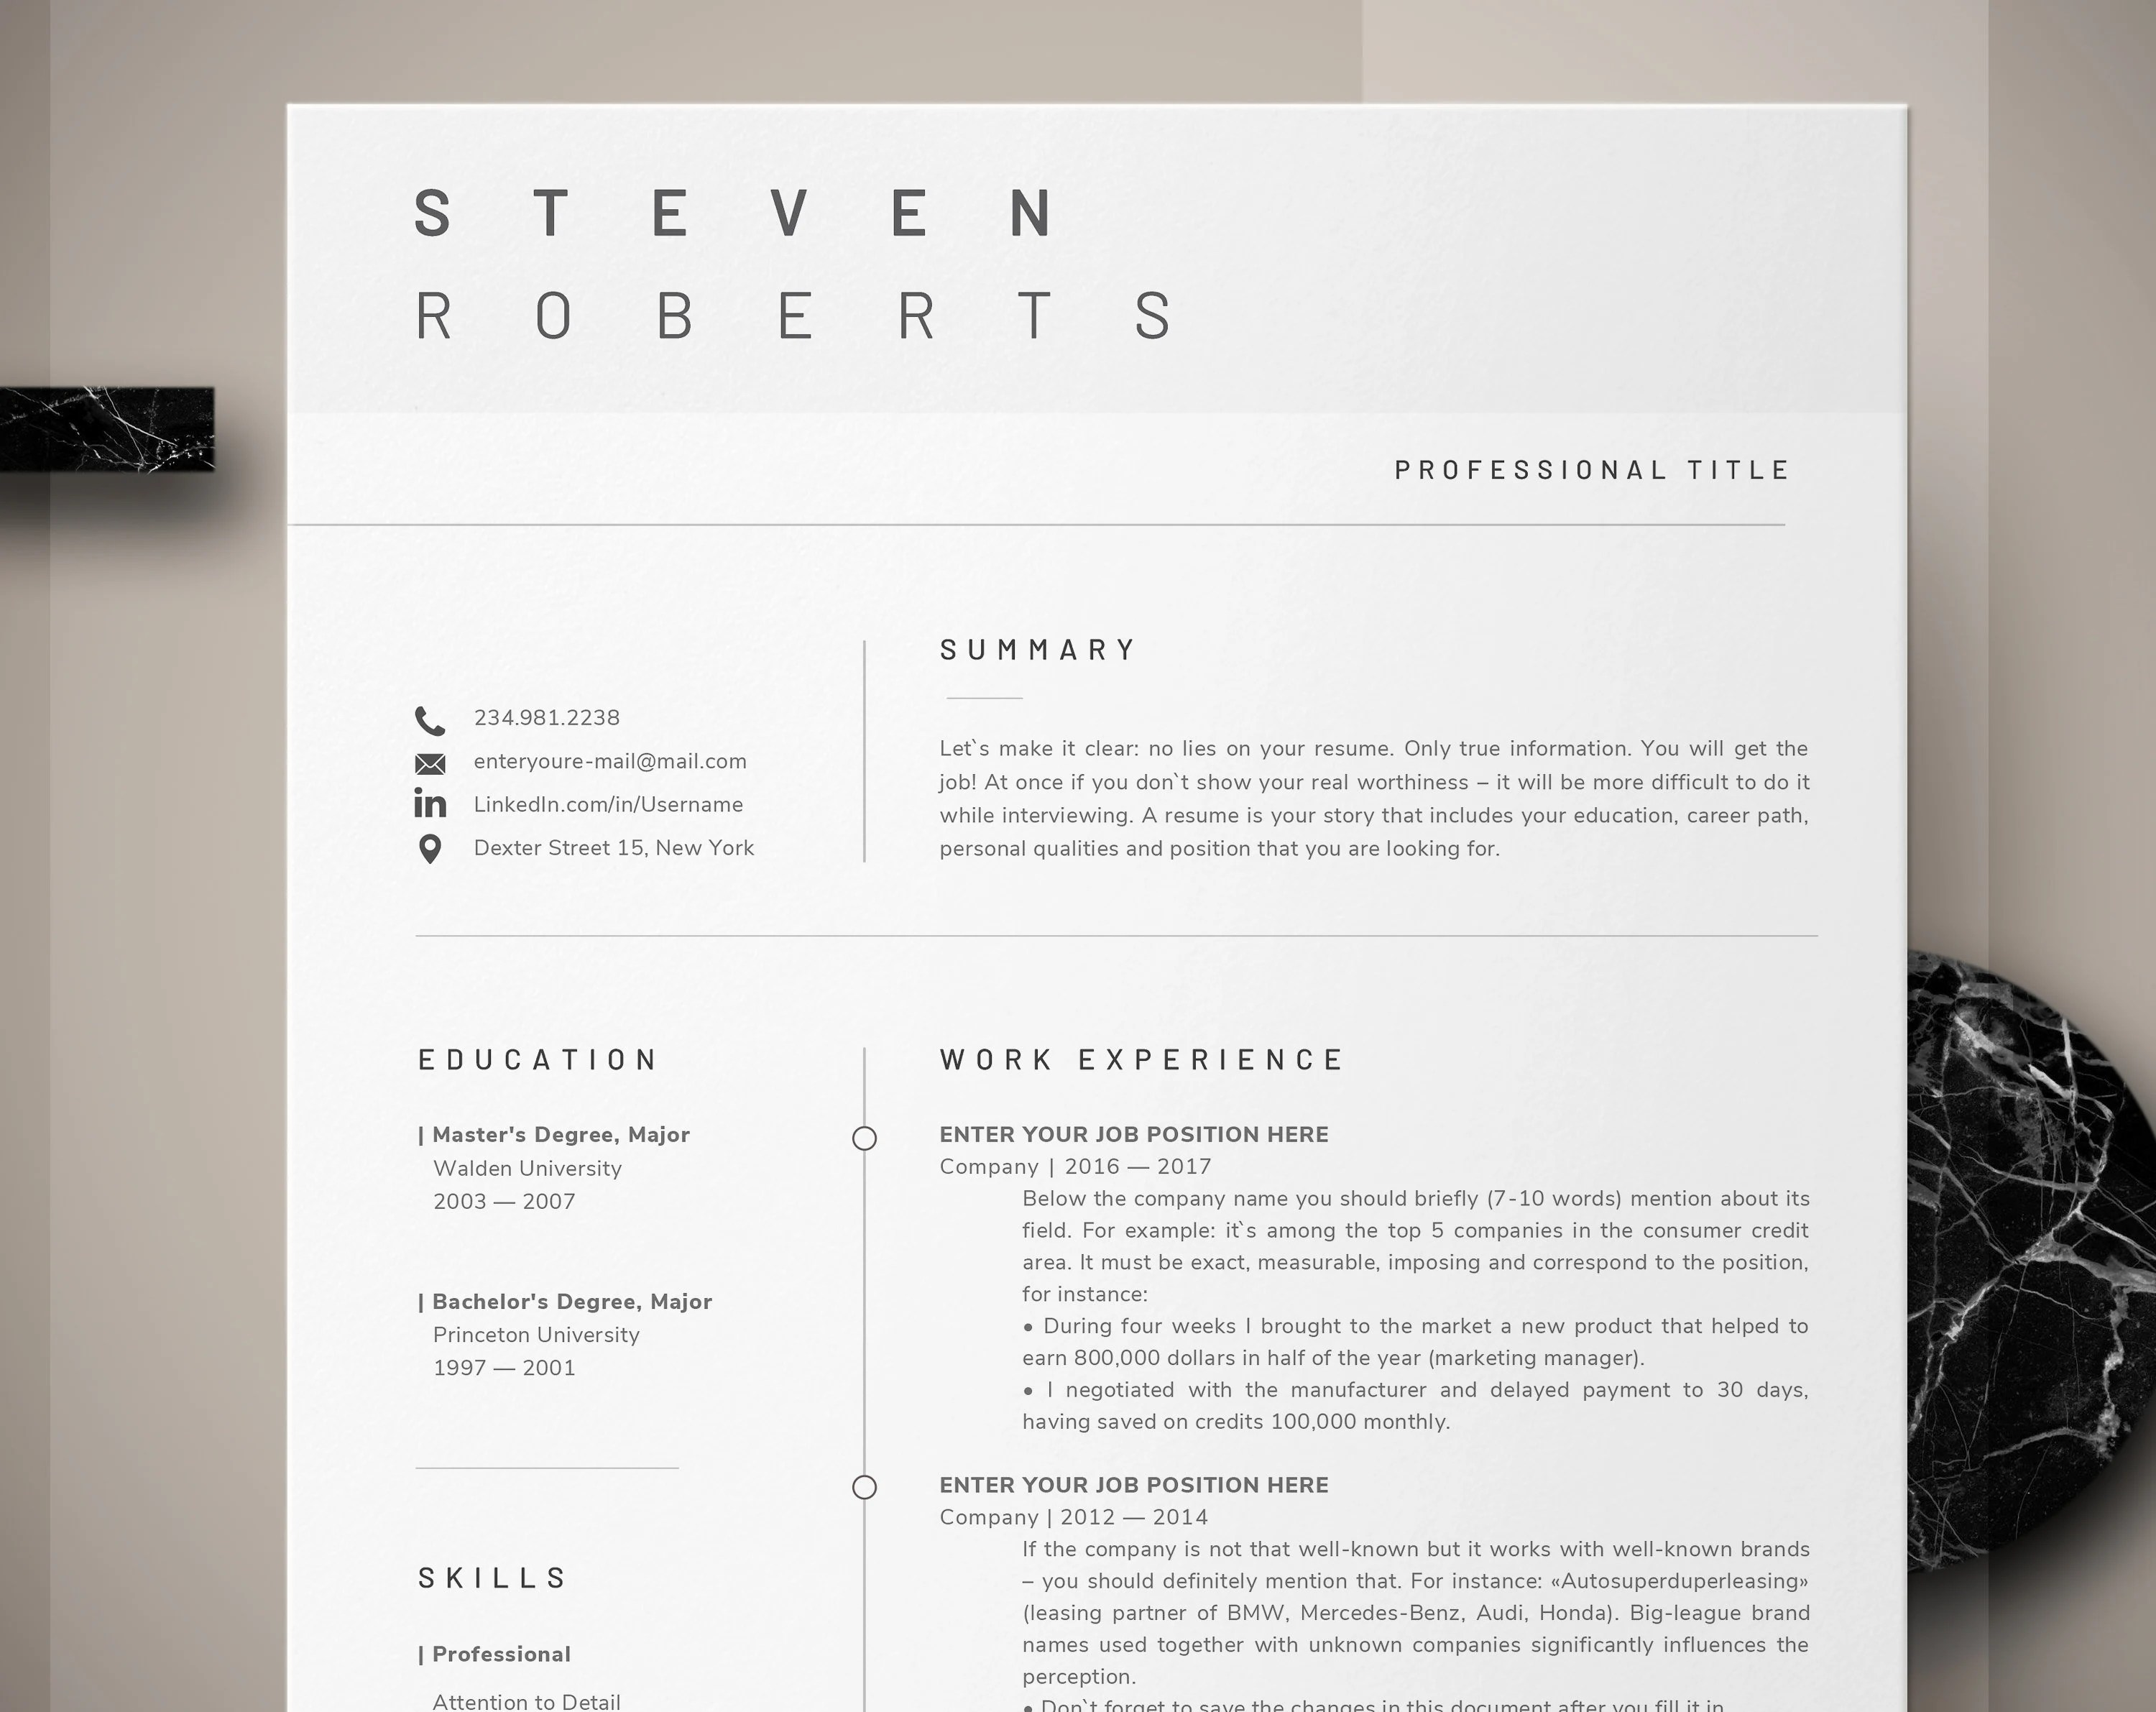 How To Make A Resume On A Mac Modern Resume Template Cv Template Cover Letter Professional Resume For Word Instant Digital Download Mac Or Pc 2 Page Minimal Resume